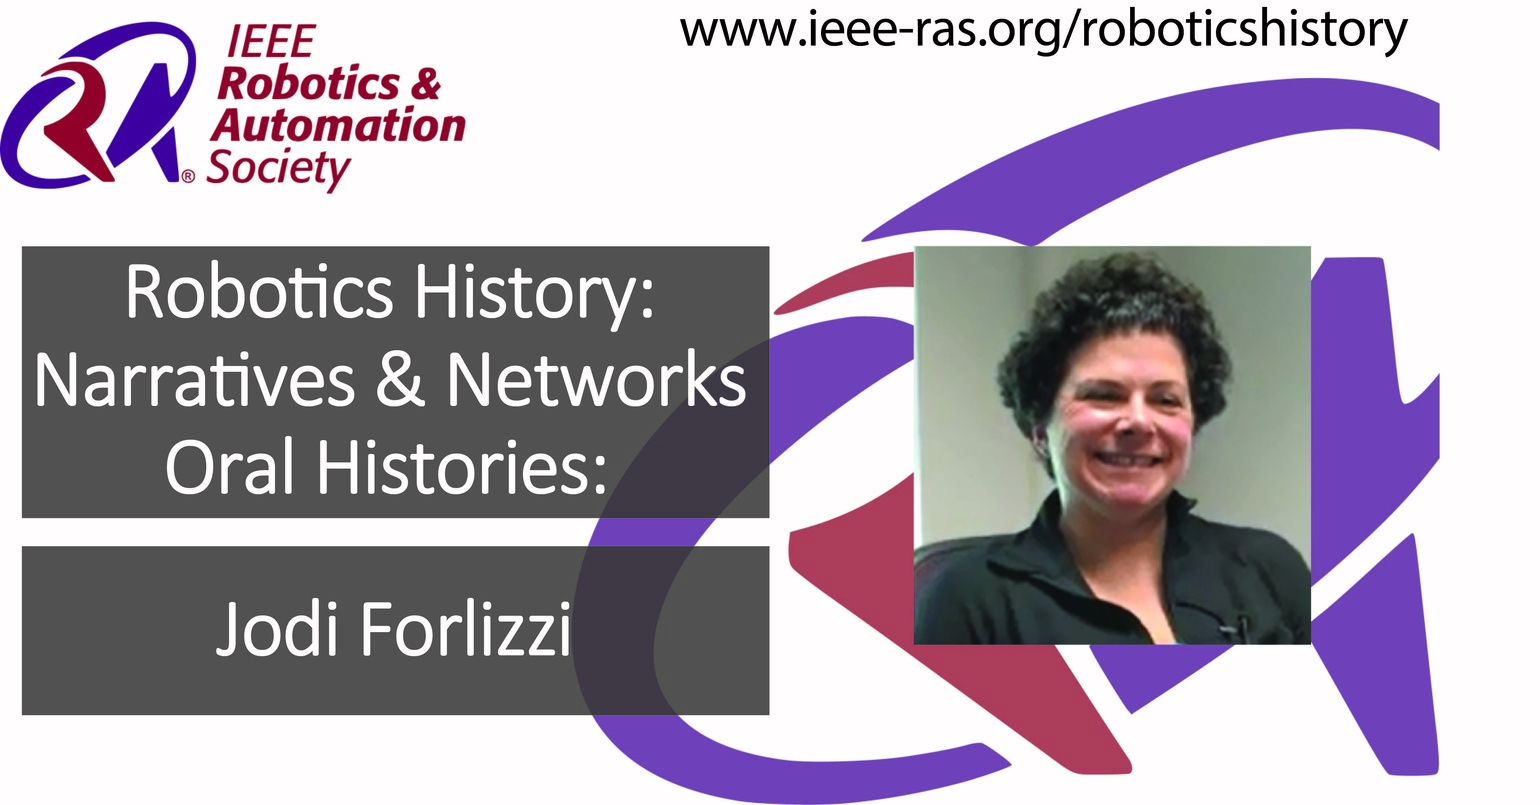 Robotics History: Narratives and Networks Oral Histories: Jodi Forlizzi